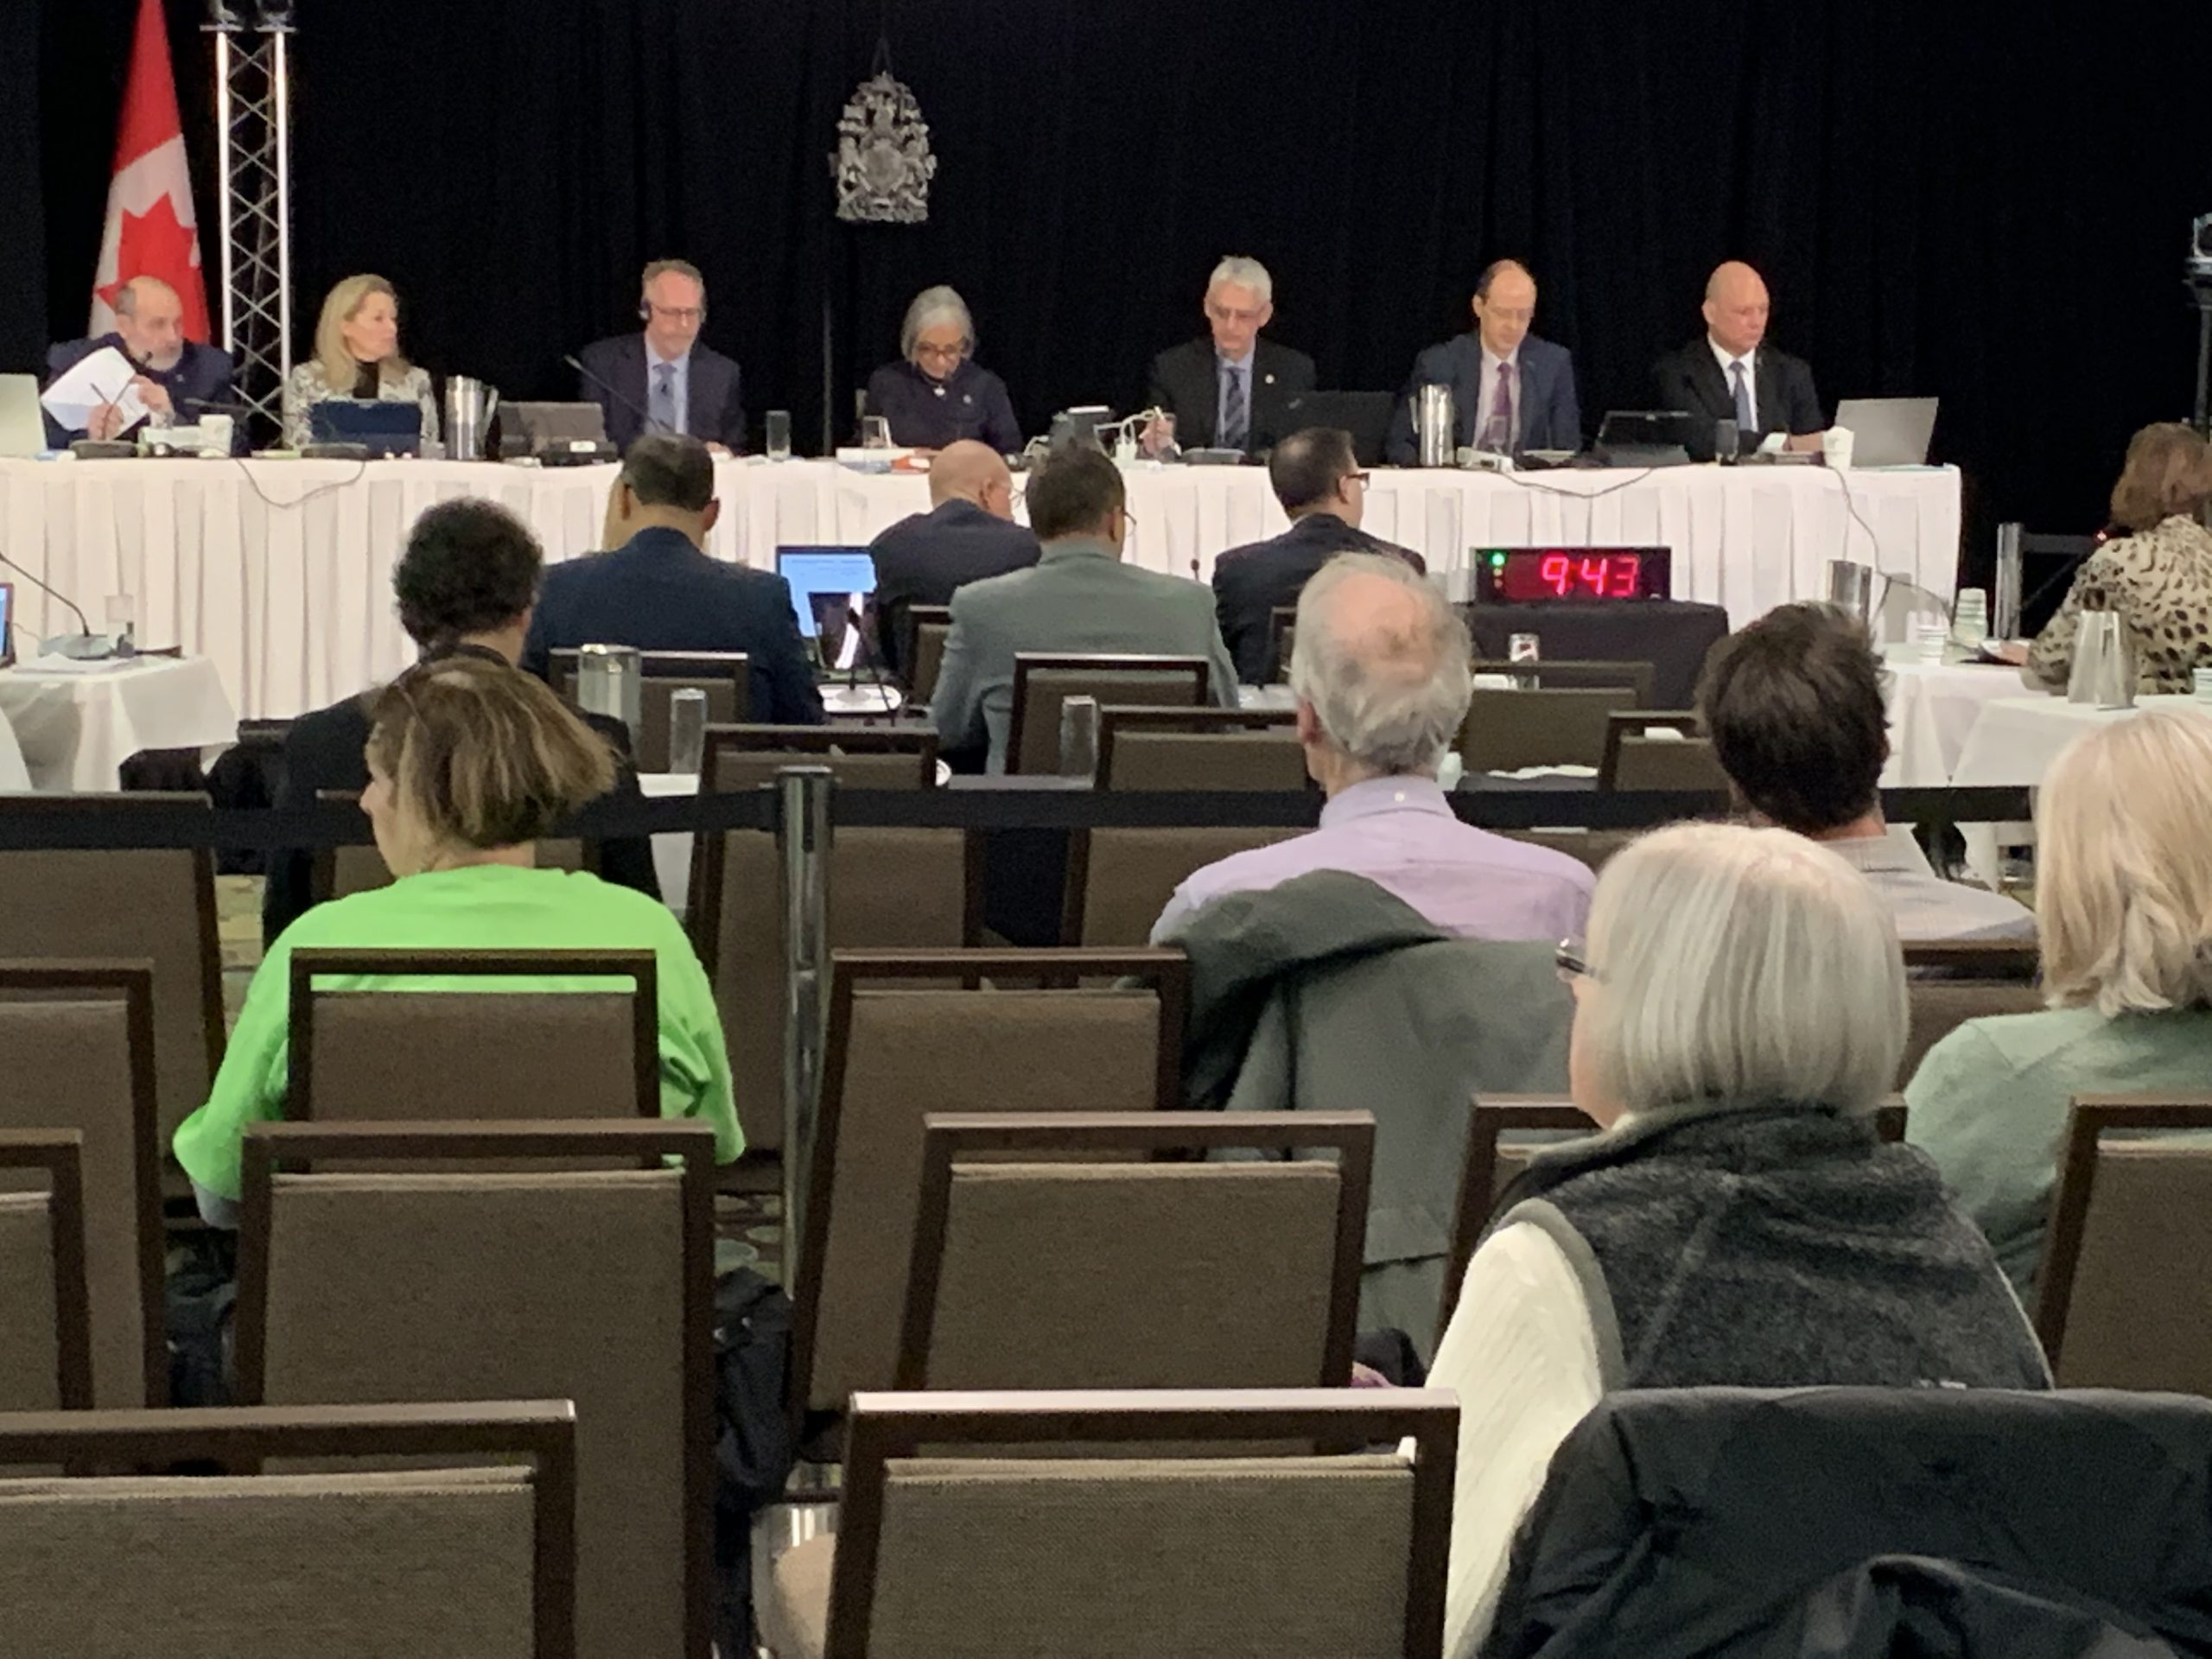 CNSC Comes to Peterborough for BWXT License Renewal Hearings